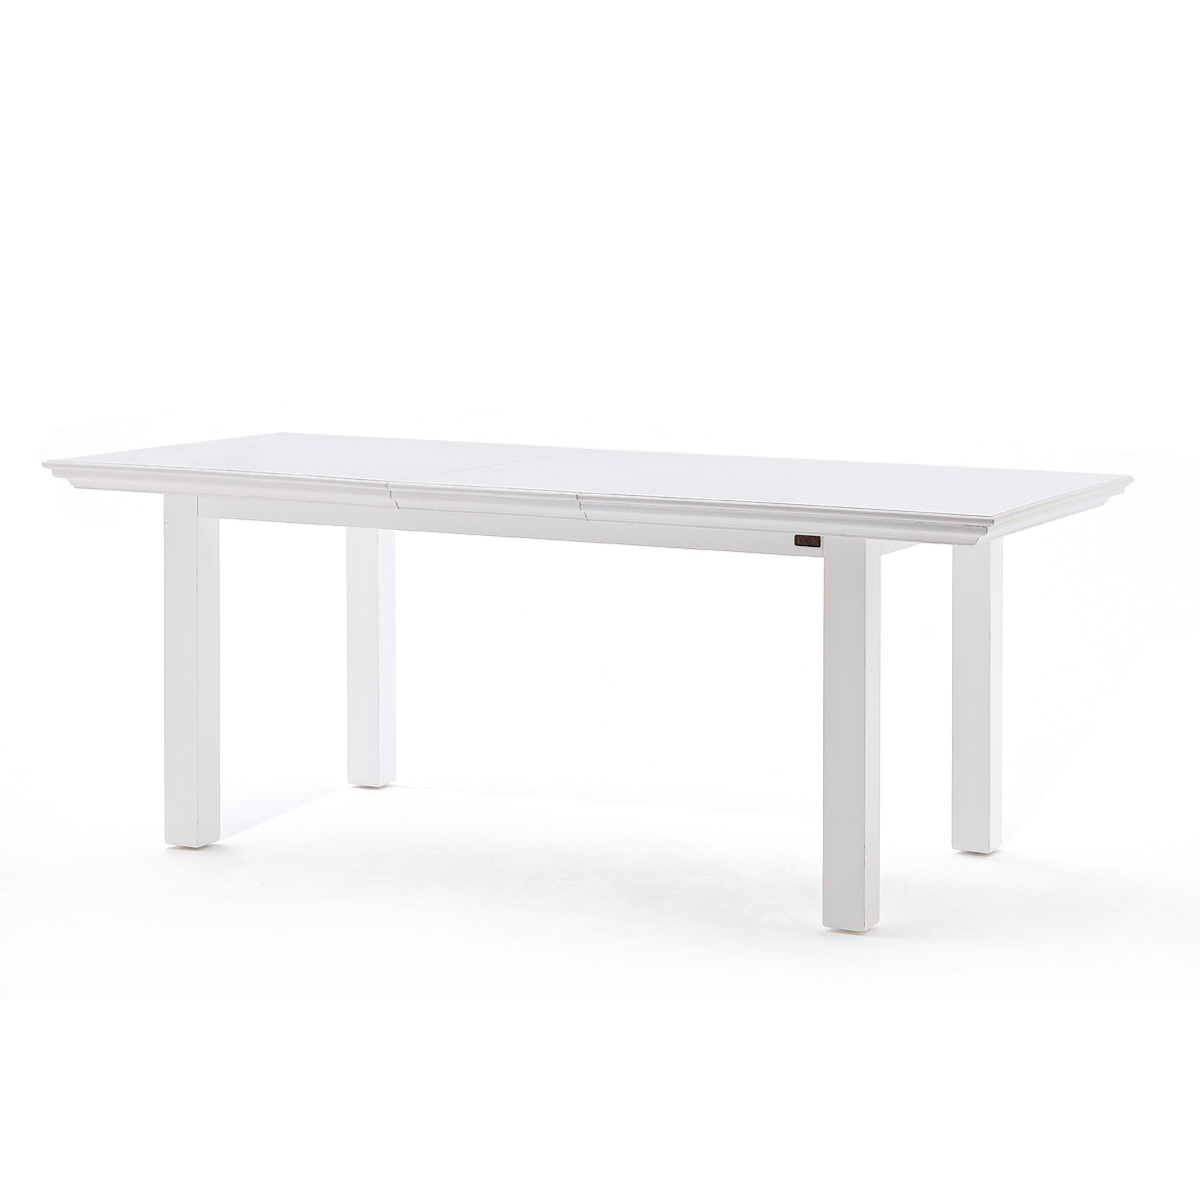 Halifax Extension Rectangular Table - Pure White - NSOLO-T766